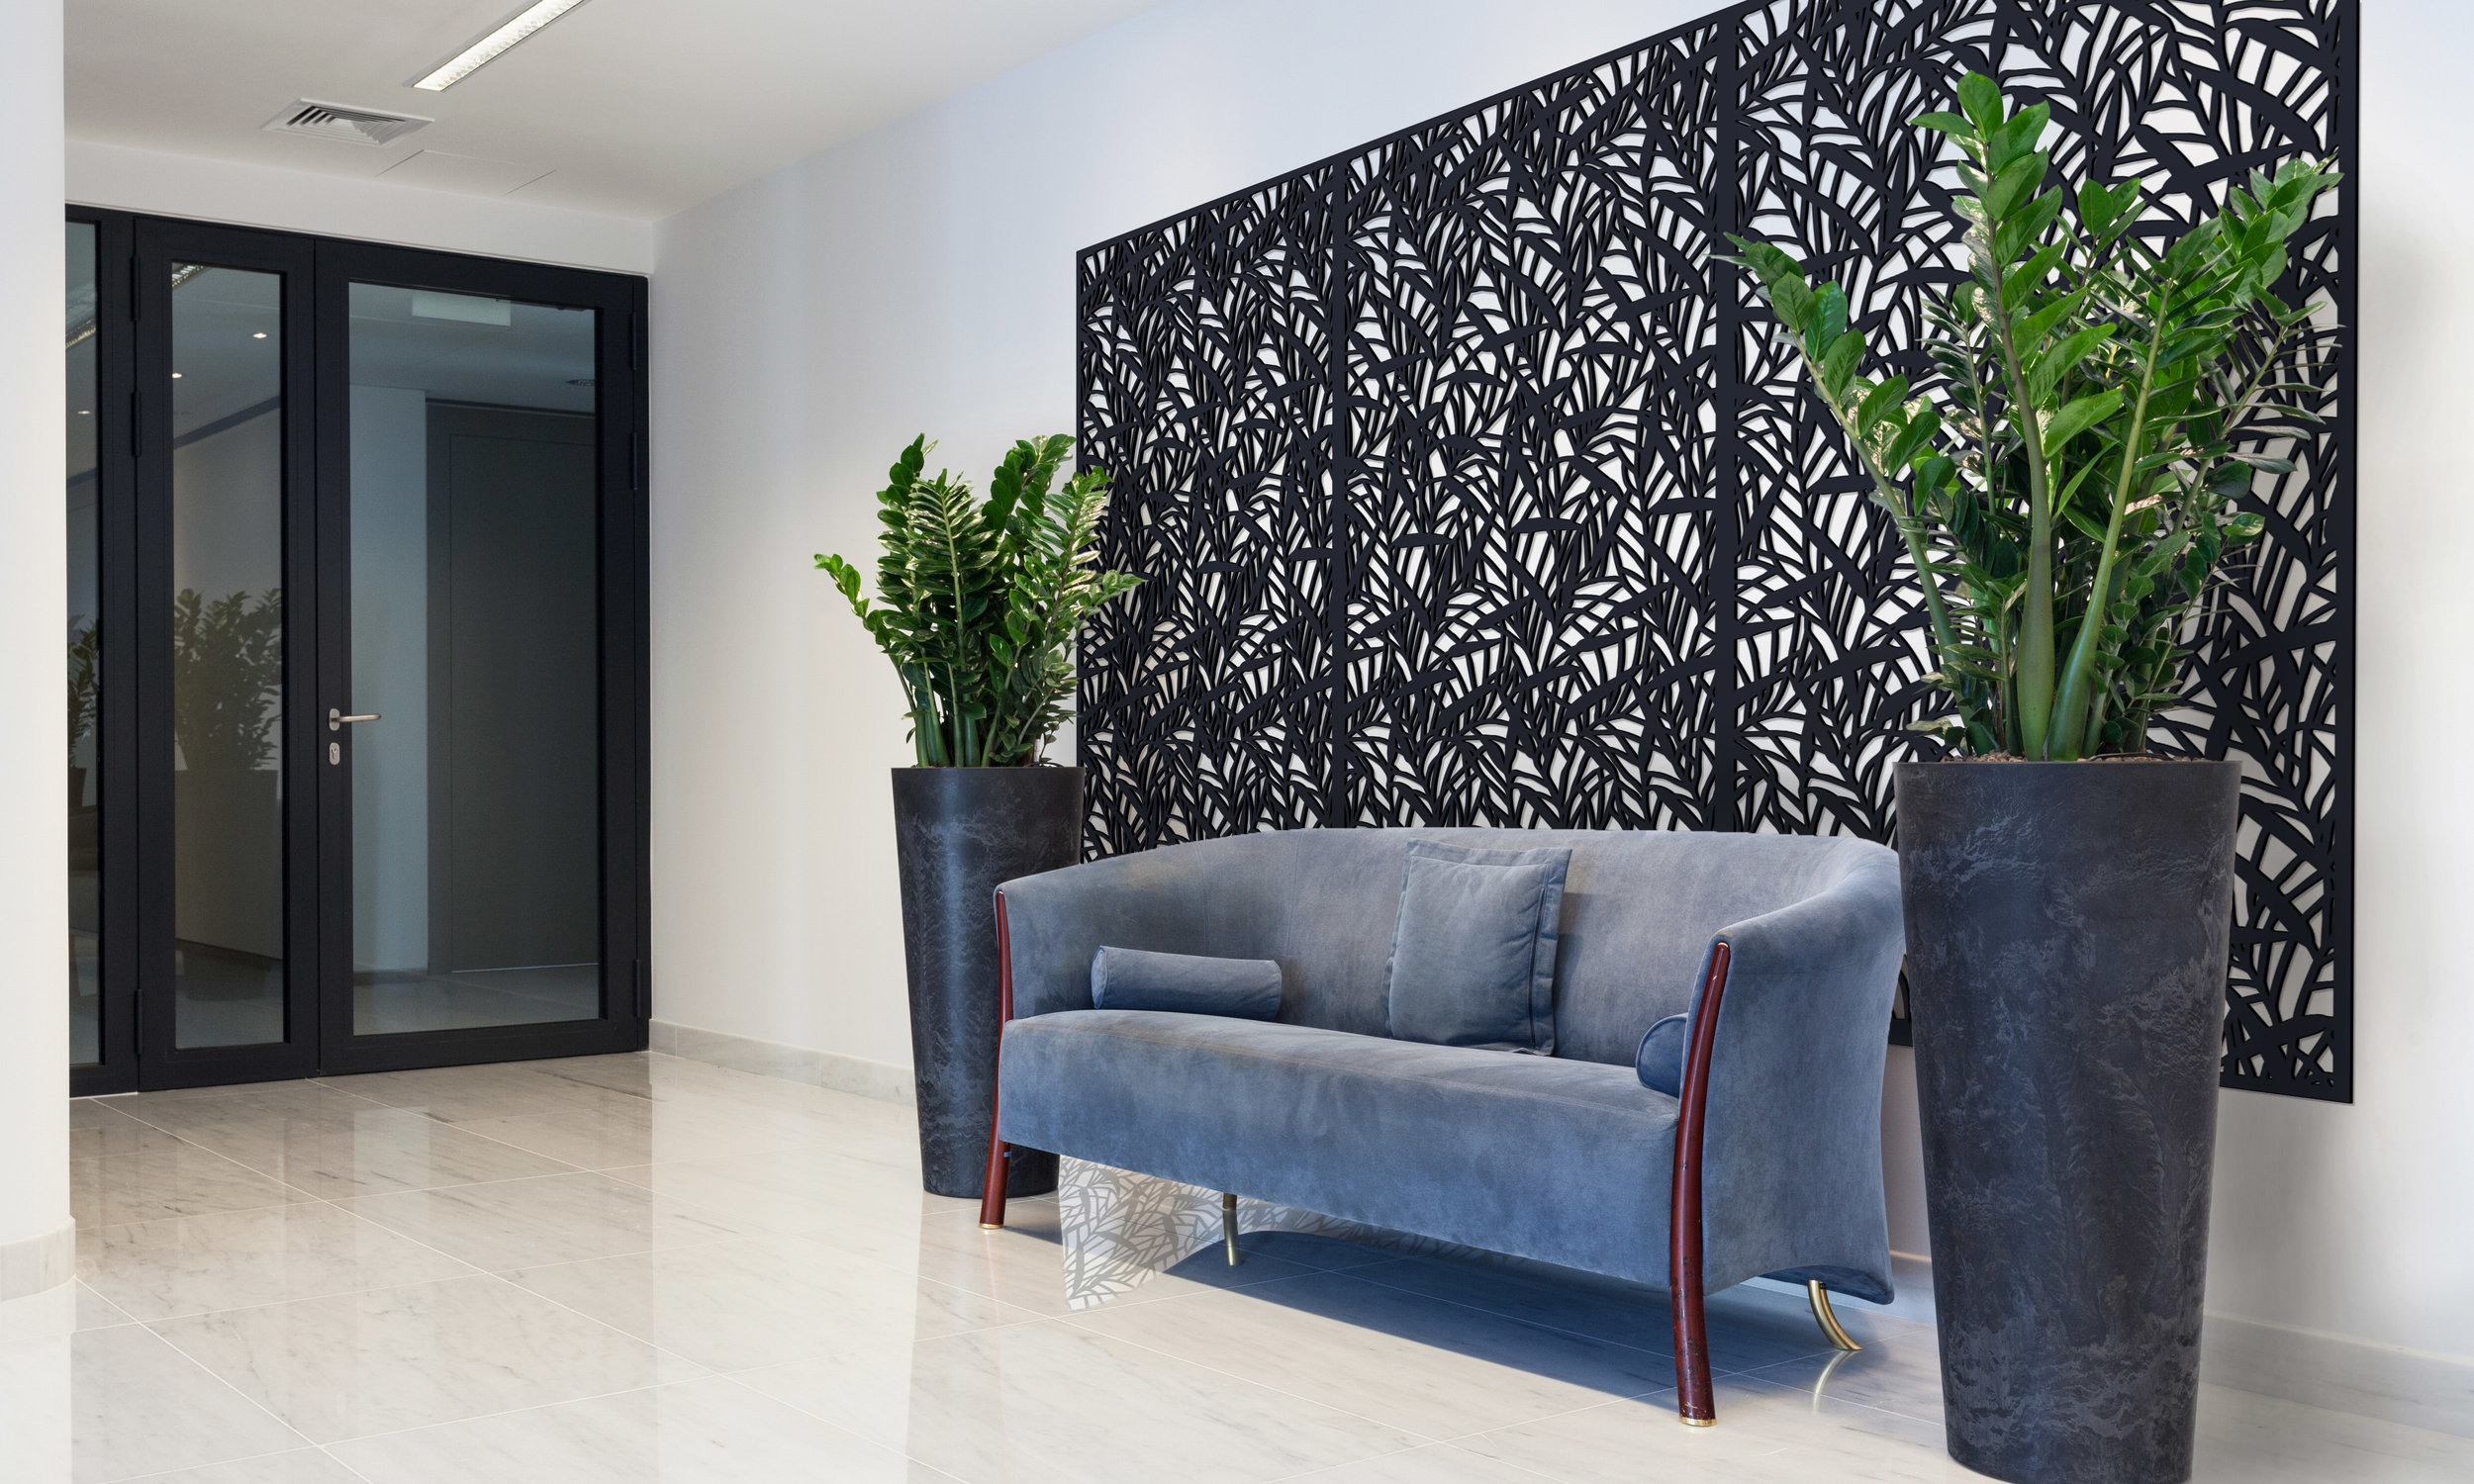 Installation Rendering A   Japanese Bamboo decorative office wall panel - painted